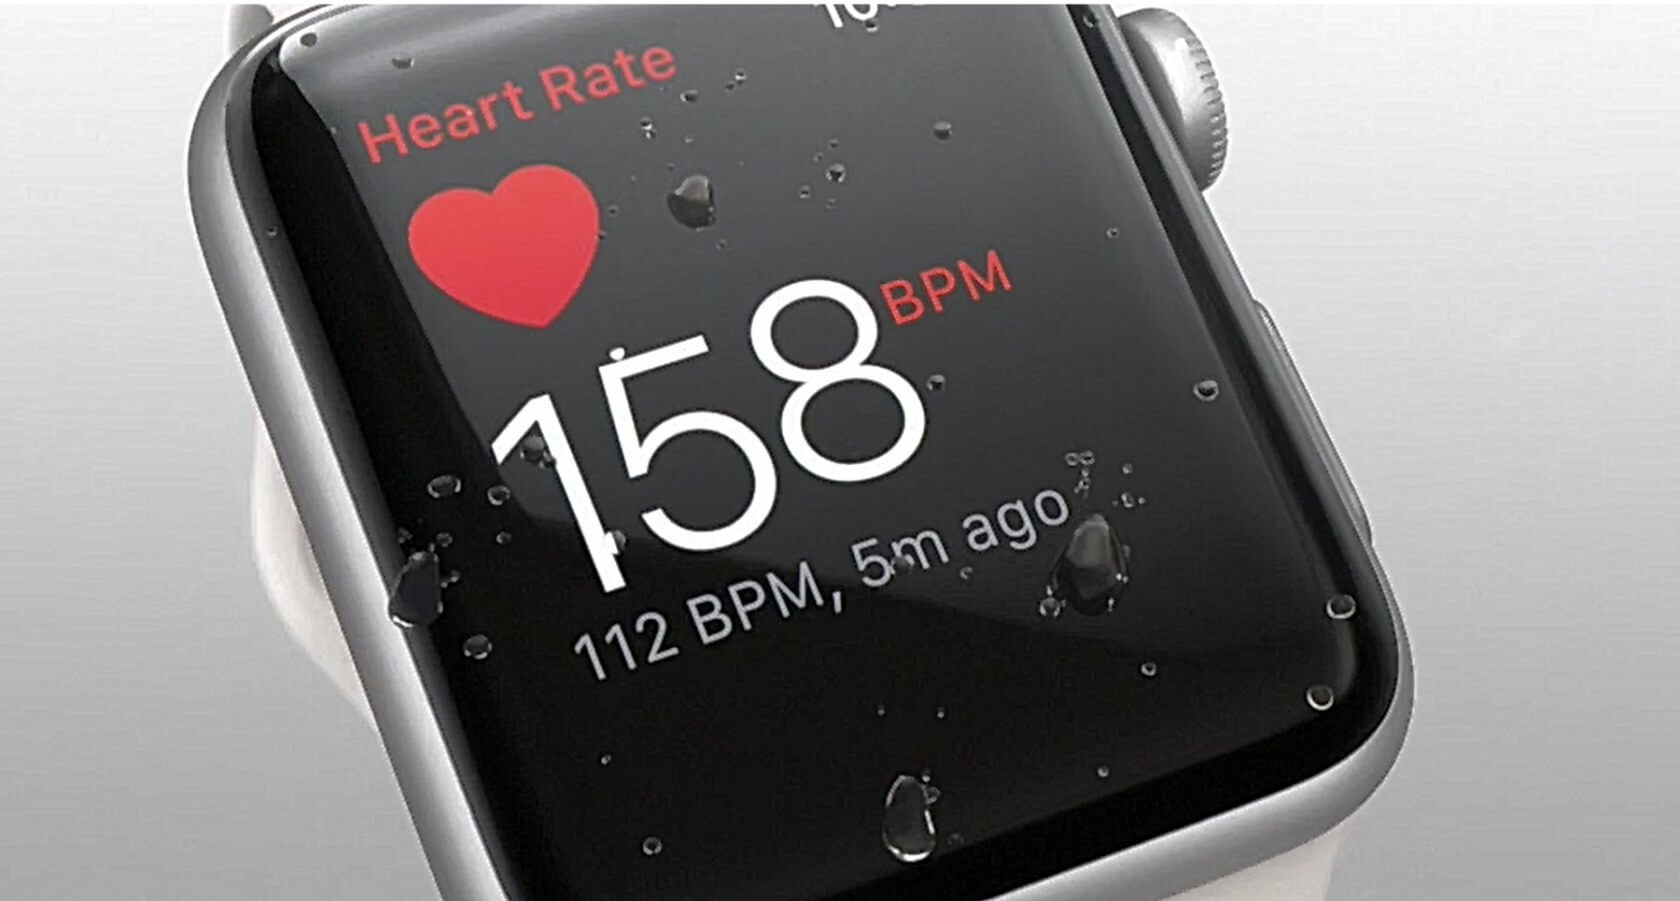 Apple Watches and Fitbits are being used to monitor wearers' hearts during drug binges